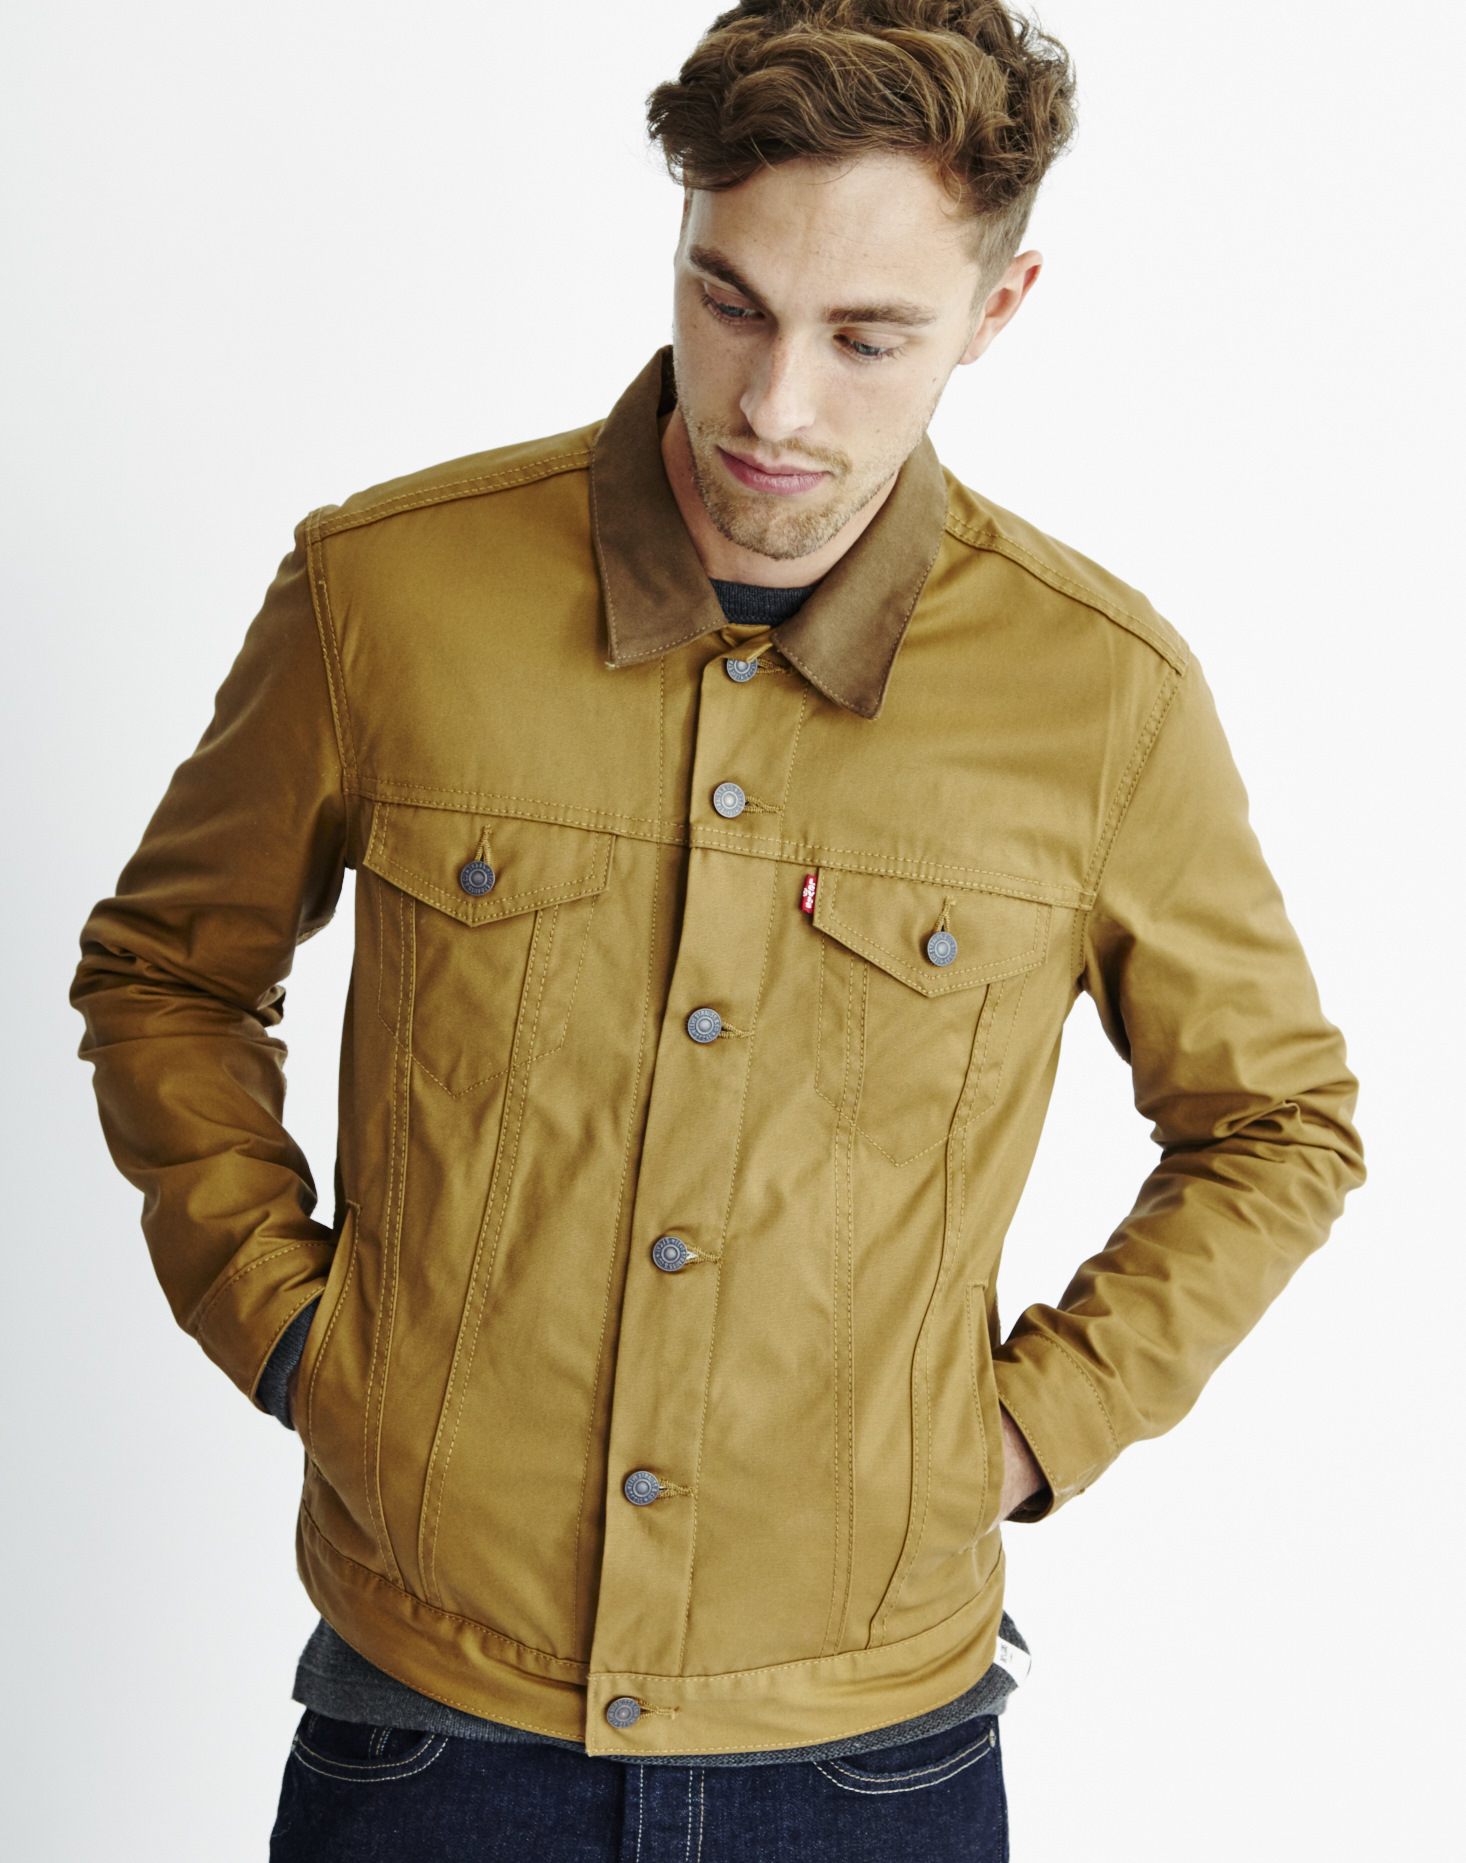 Carhartt Trucker Jacket | Mens Waxed Jackets | Waxed Trucker Jacket